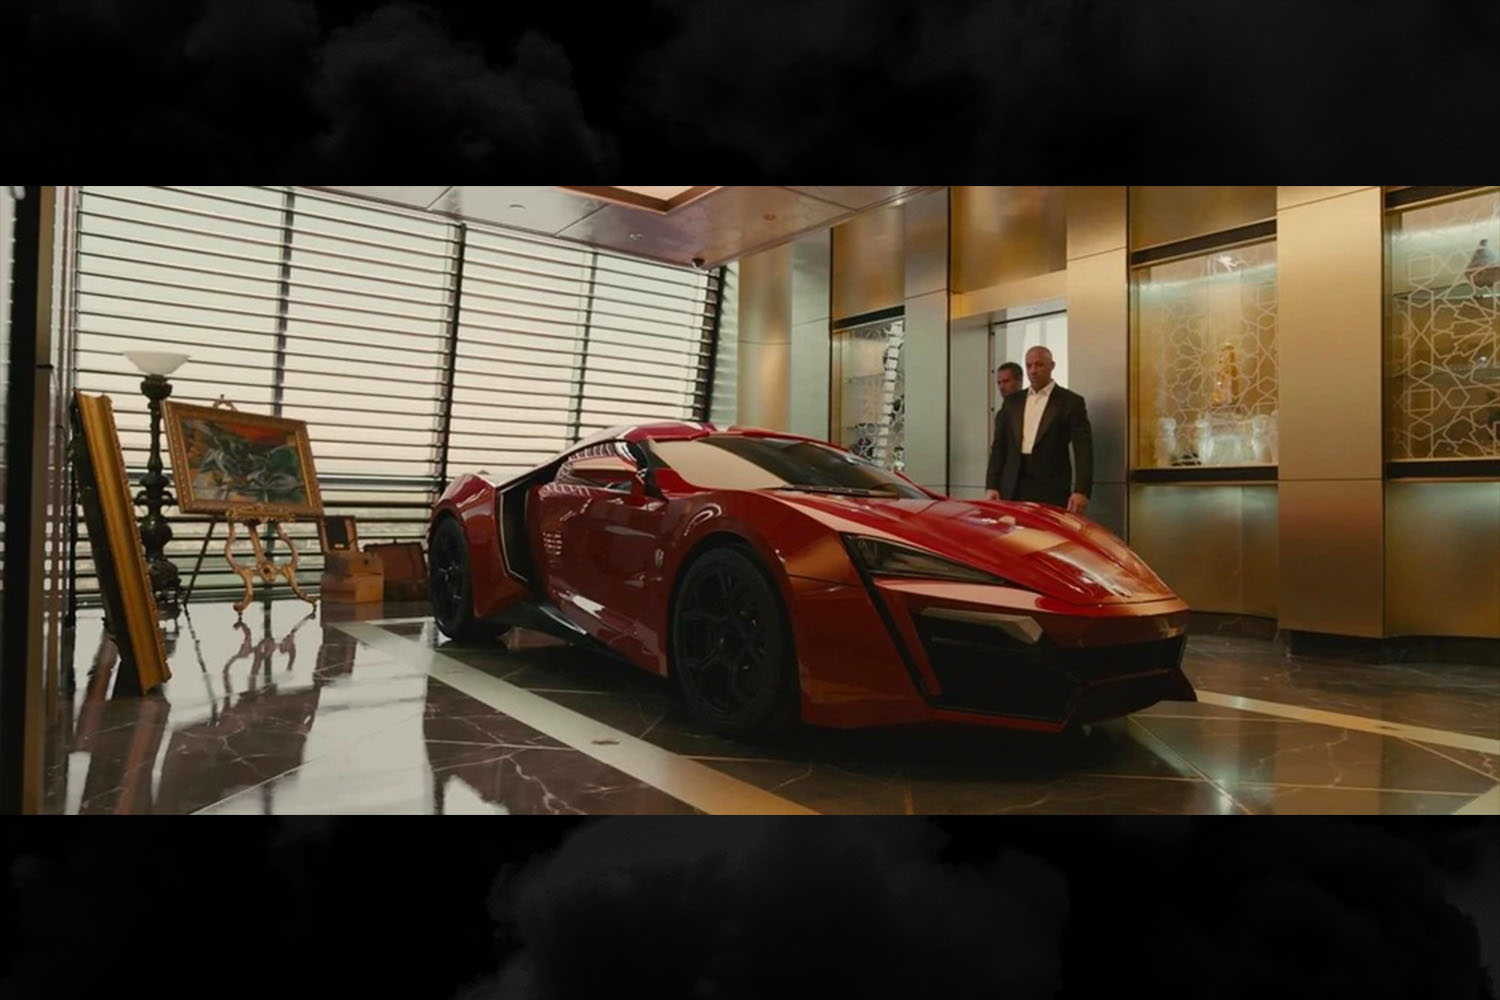 The red W Motors Lykan HyperSport driven by Dominic Toretto (Vin Diesel) in Furious 7, and eventually jumped between skyscrapers